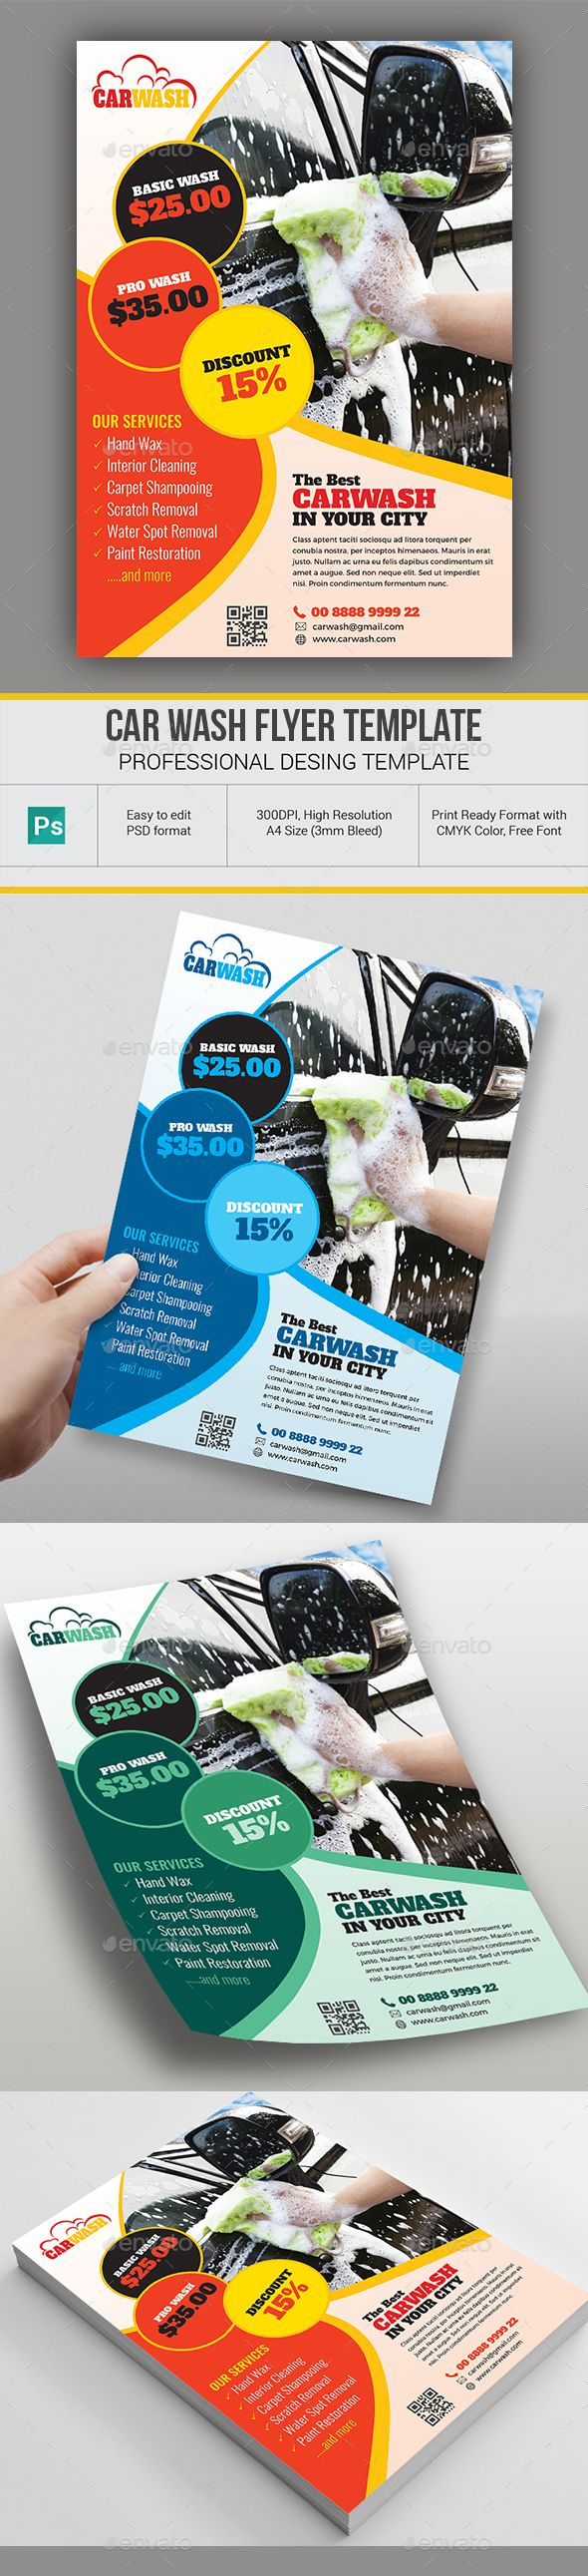 Car wash flyer templates photoshop psd repair station car wash download